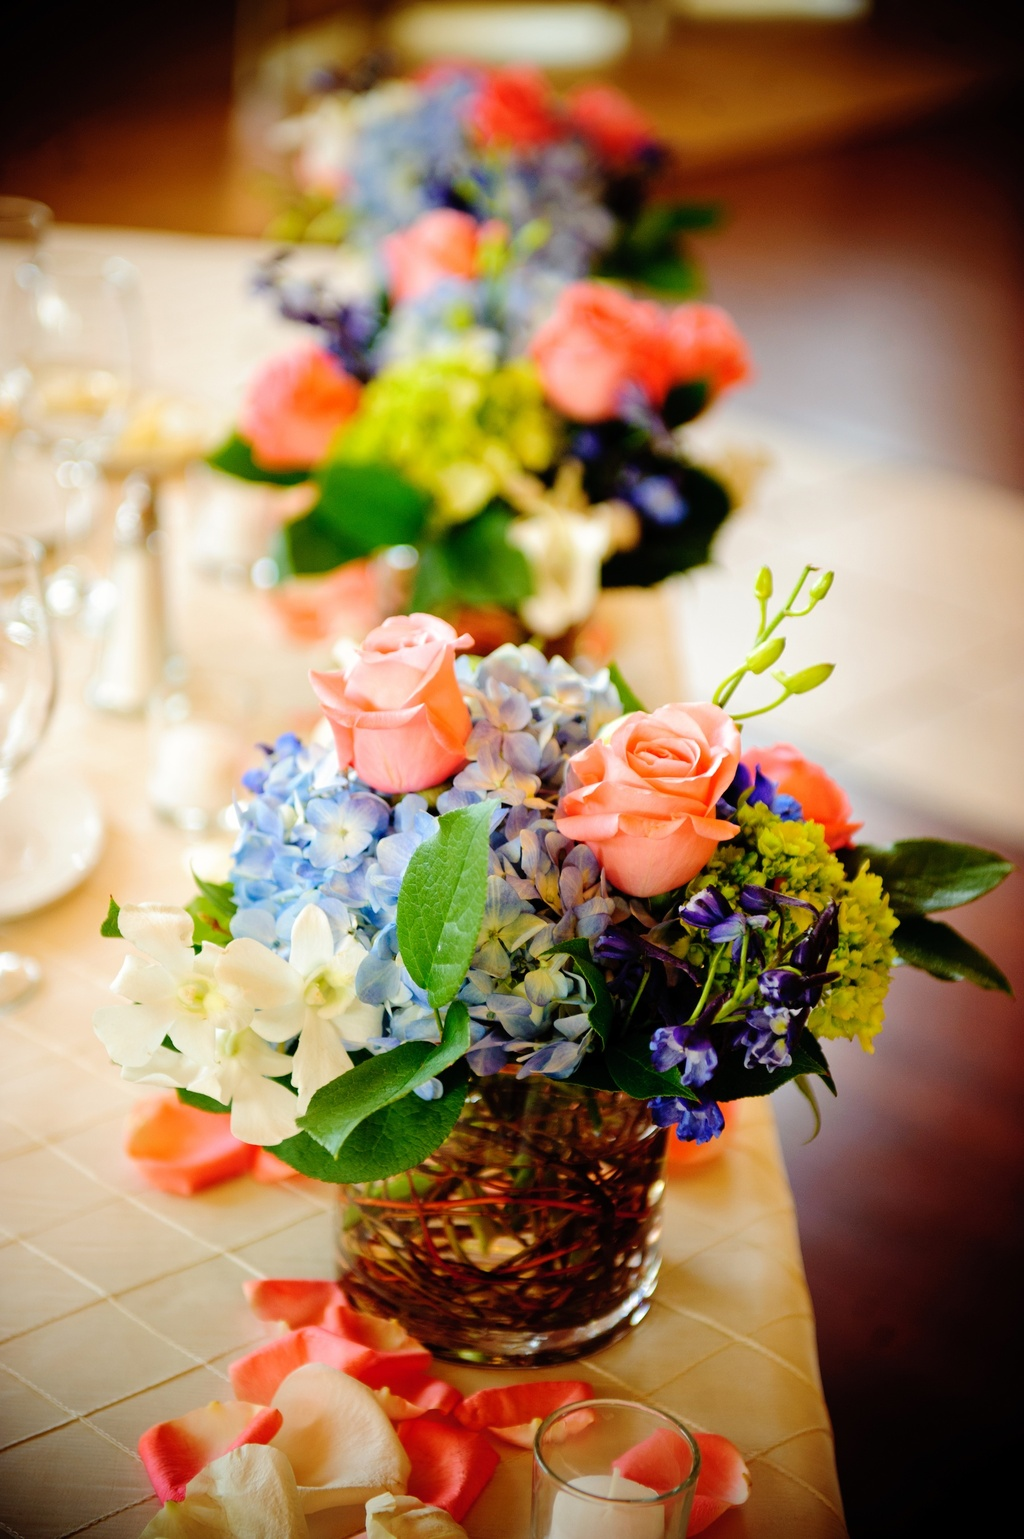 Elegant-real-wedding-with-simple-diy-details-pretty-spring-centerpieces.full